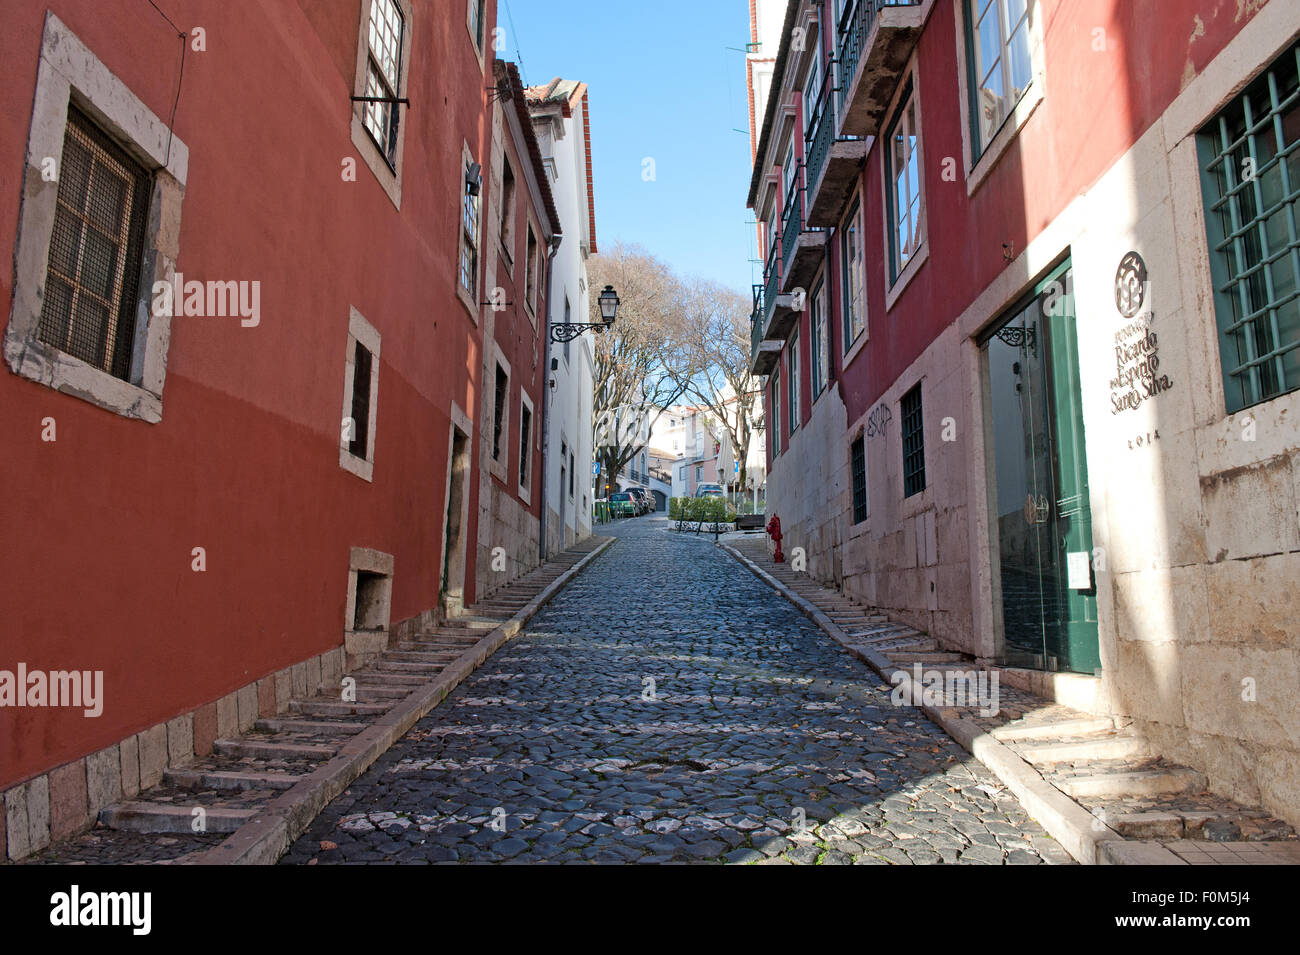 Typical small tidy road in the old part of city Lisbon and museum the Fondation Ricardo do Espirito Santo Silva, - Stock Image